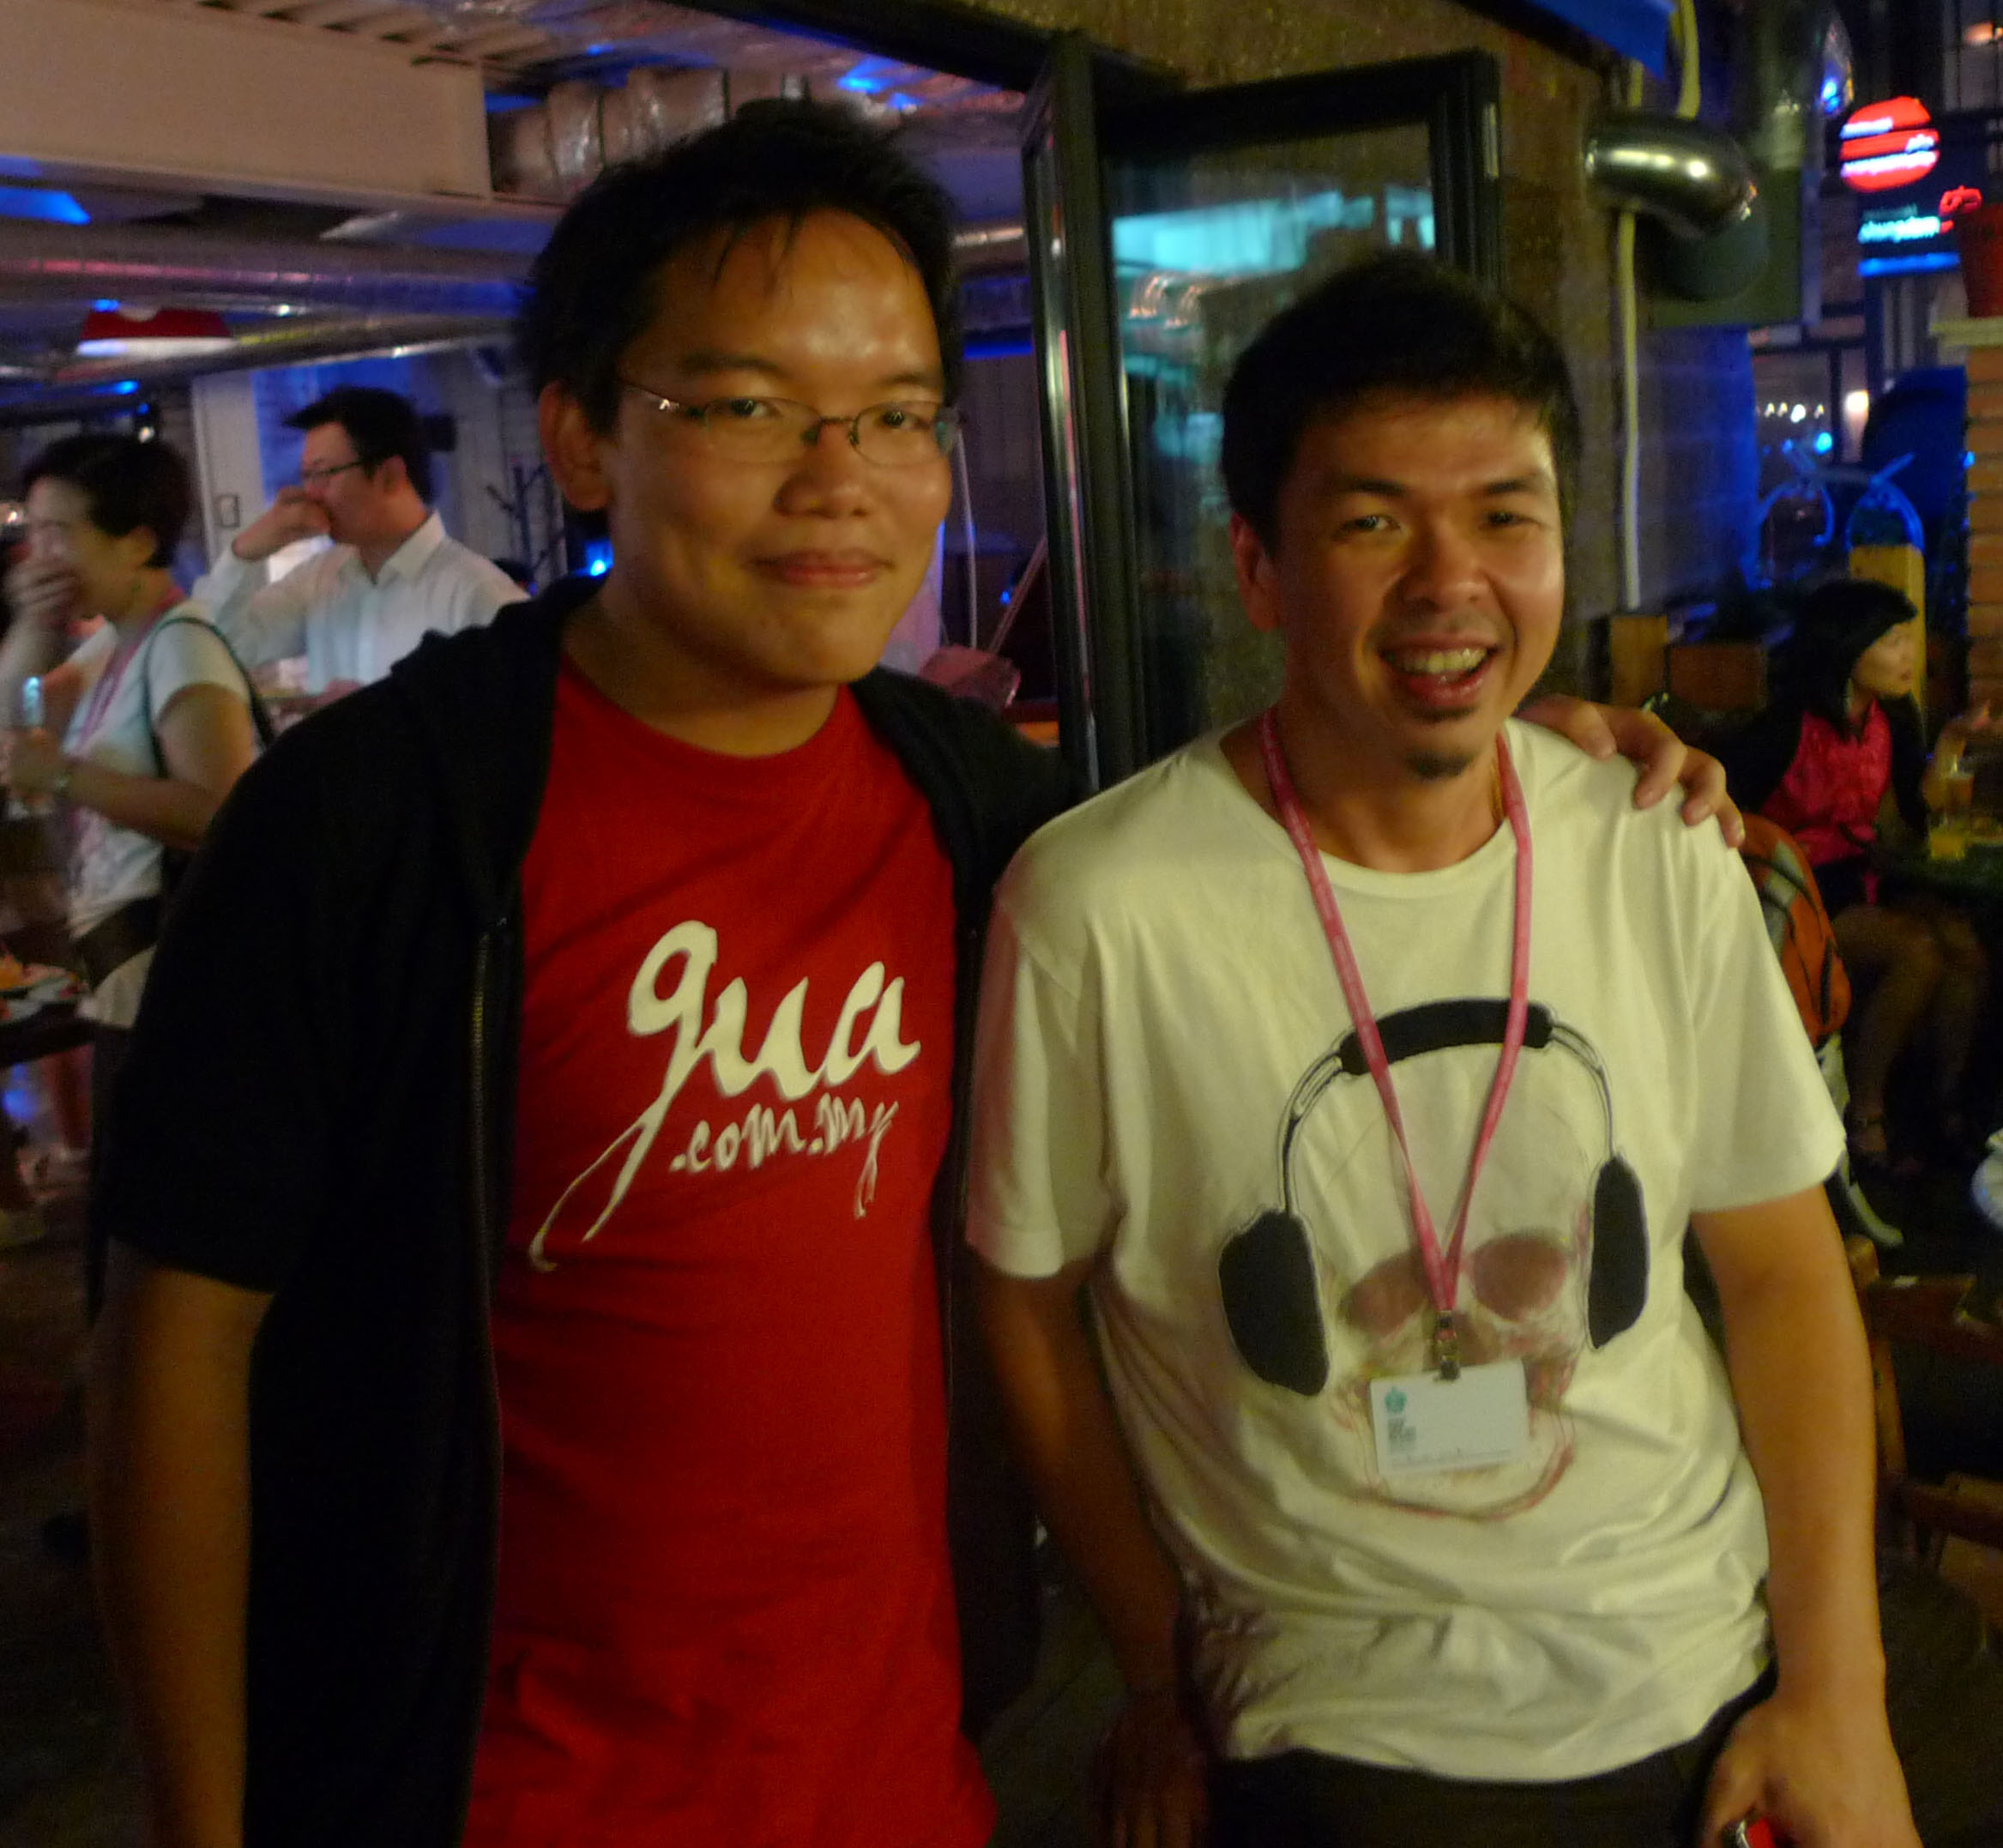 Image of Sherman Ong from Wikidata